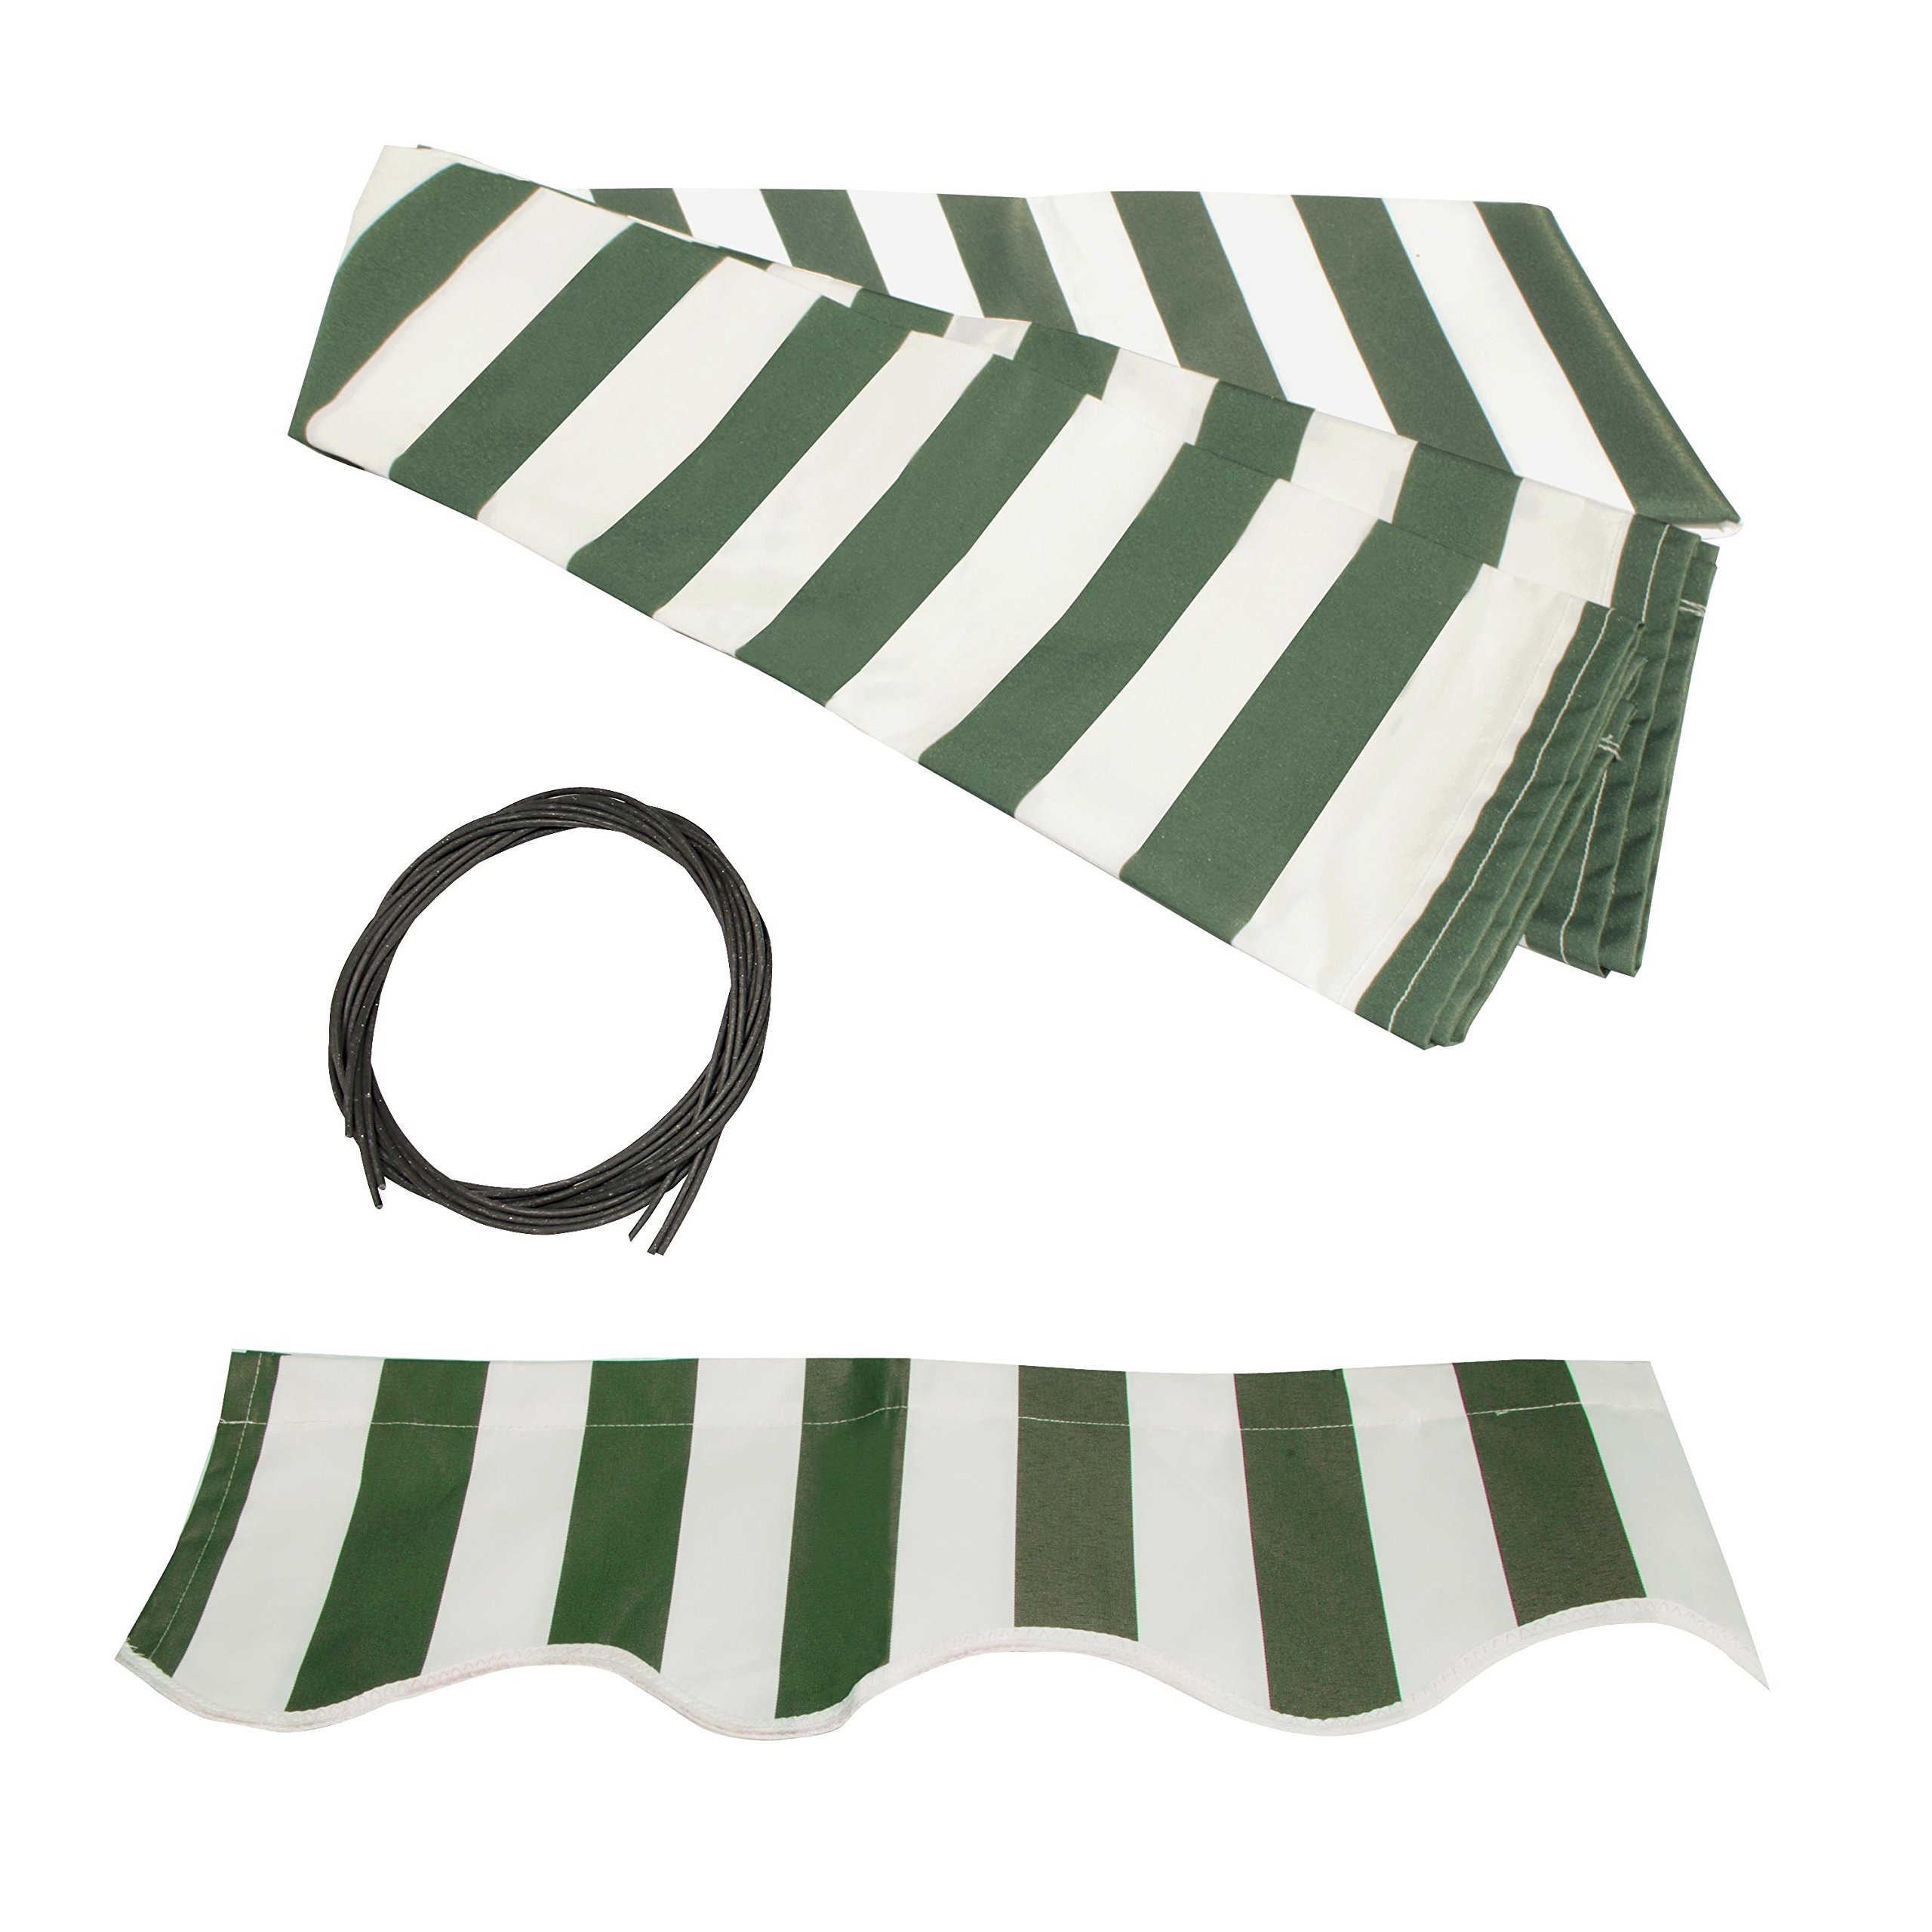 ALEKO FAB10X8GRWT00 Retractable Awning Fabric Replacement 10 x 8 Feet Green and White Striped by ALEKO